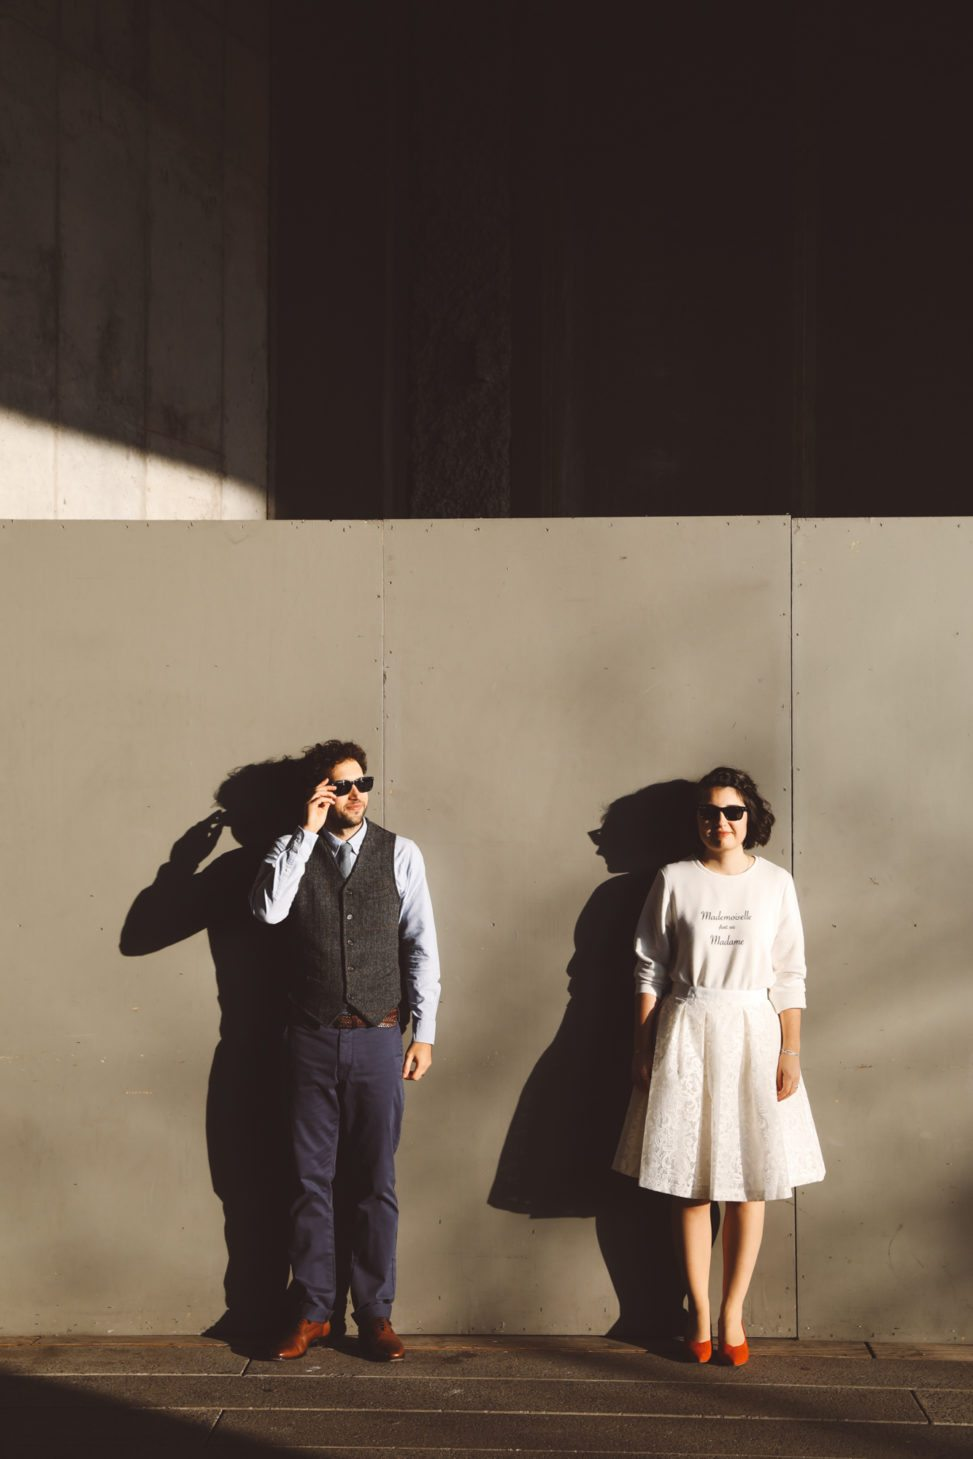 Couple in sunglasses stand in front of a temporary wall outside, the sun creating dramatic elongated shadows on the wall behind them